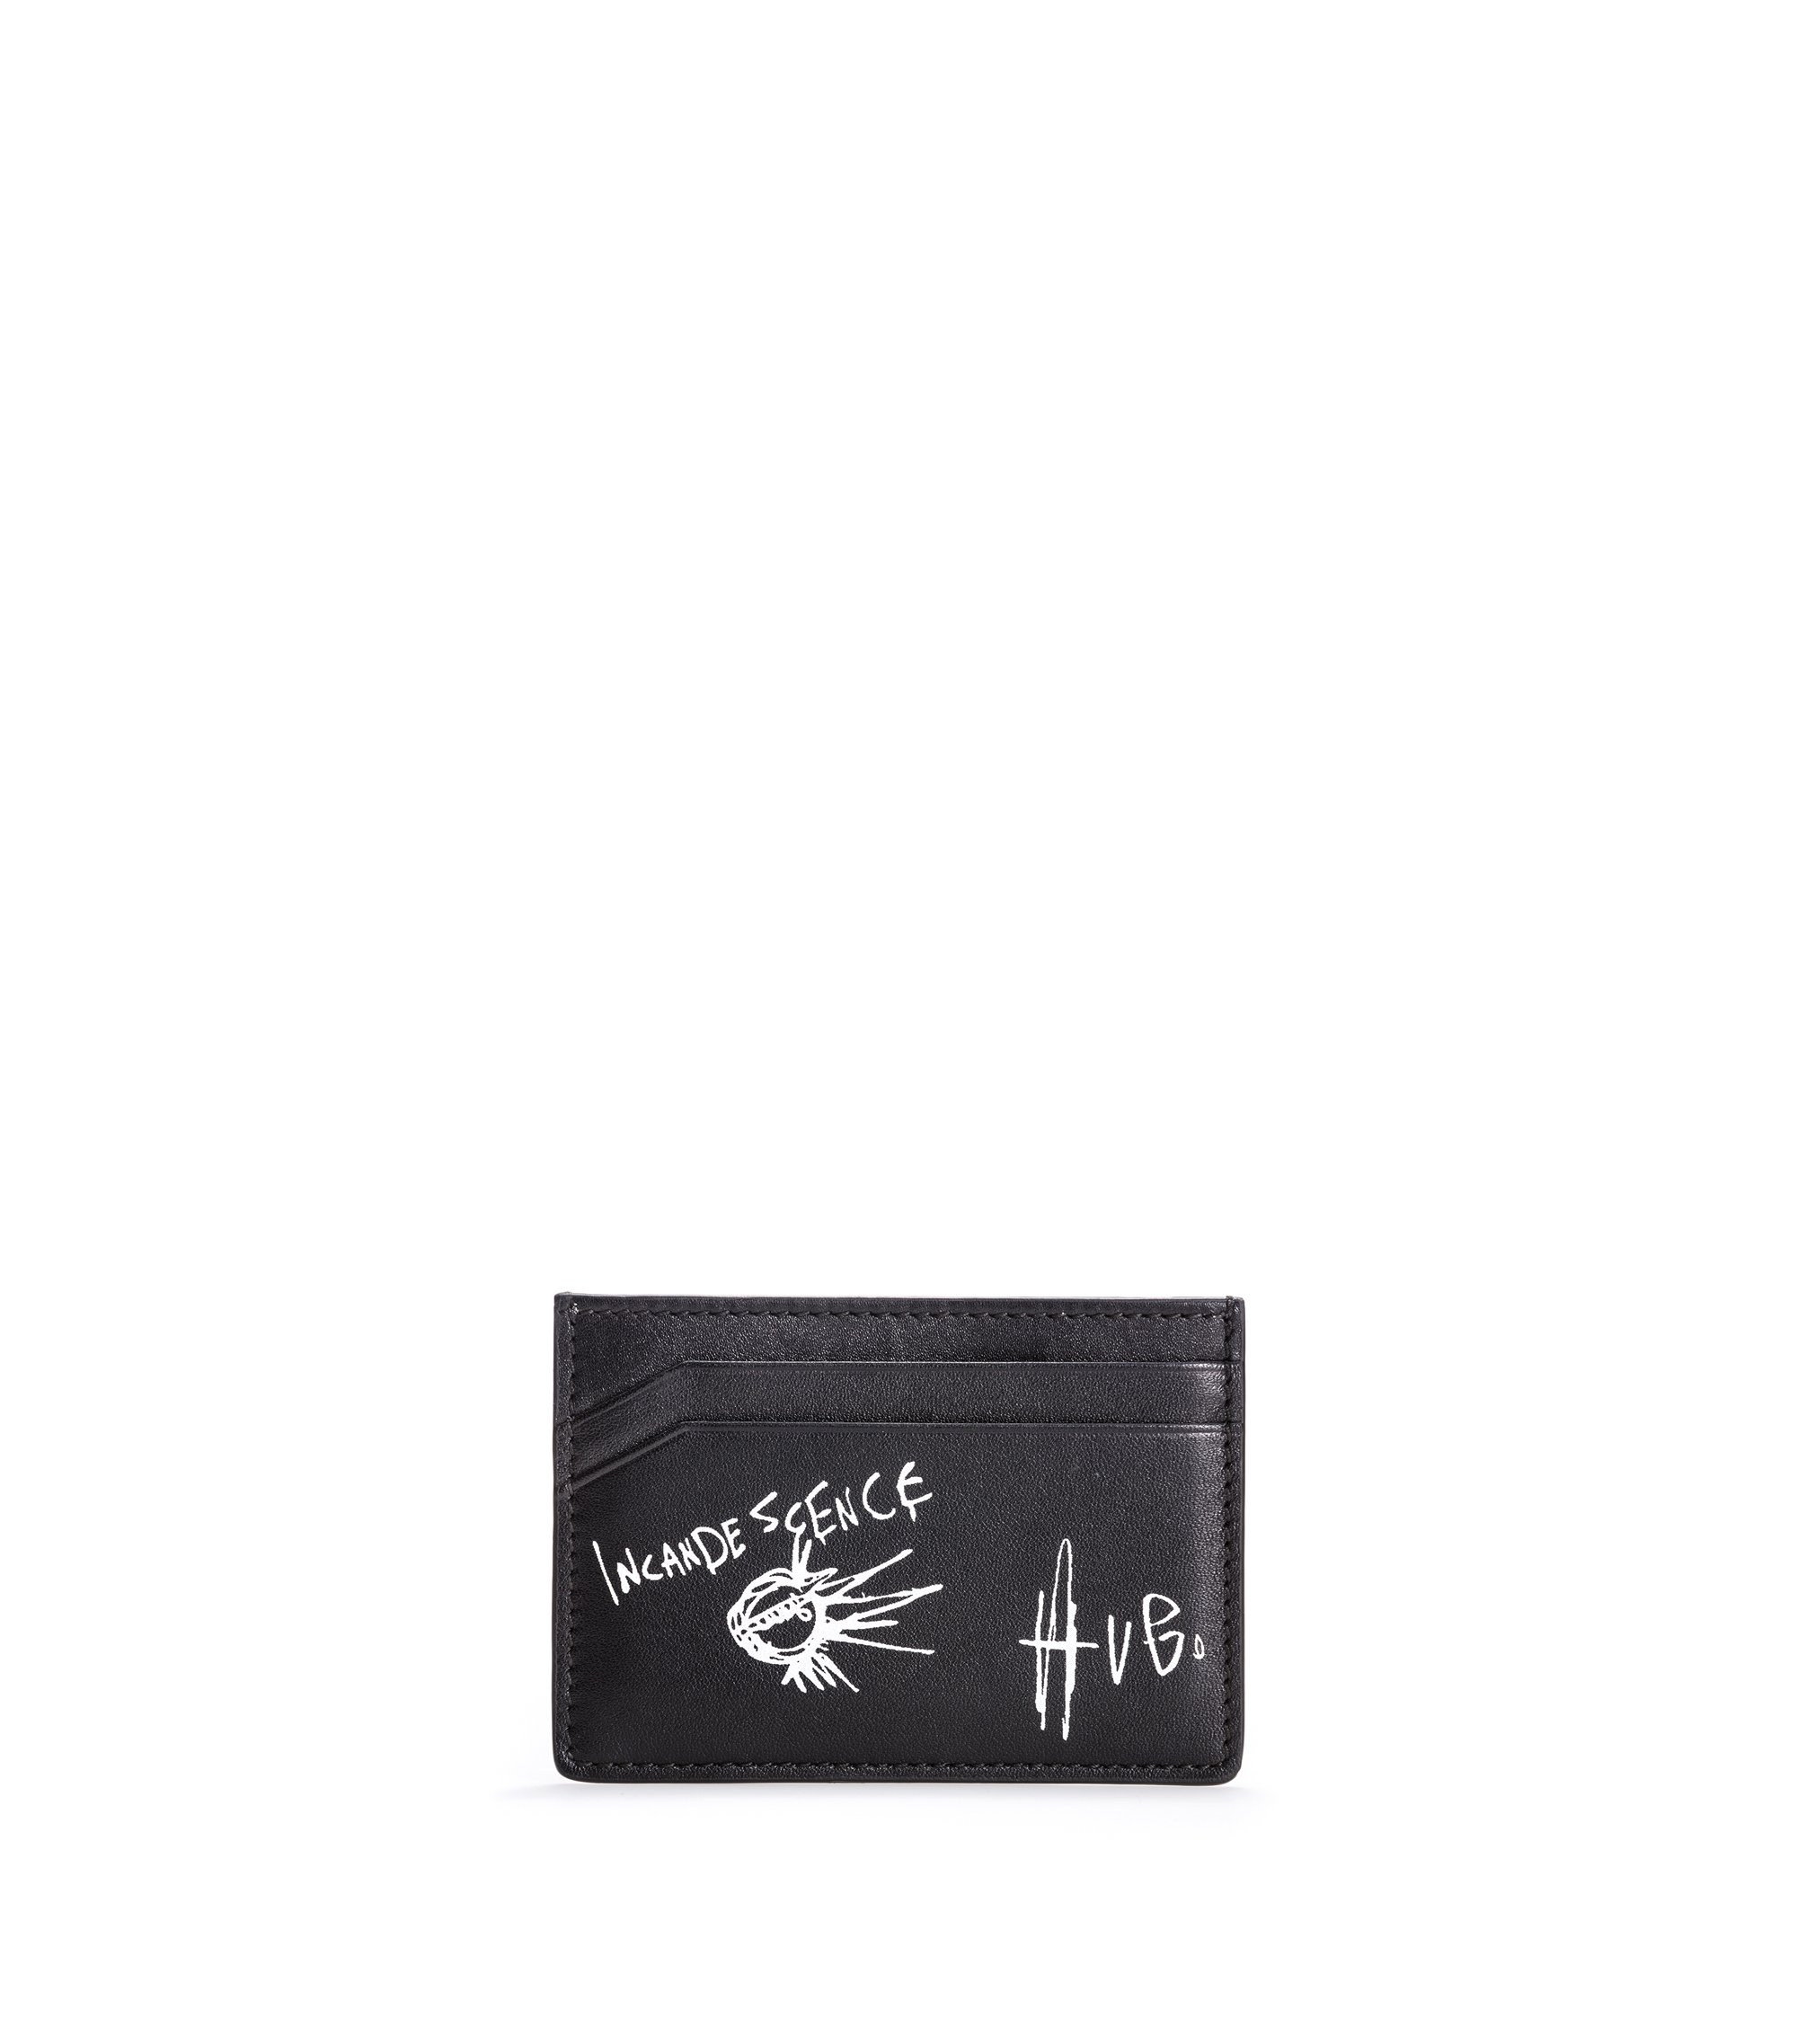 Graphic Print Leather Card Holder | Tribute P S Card, Black